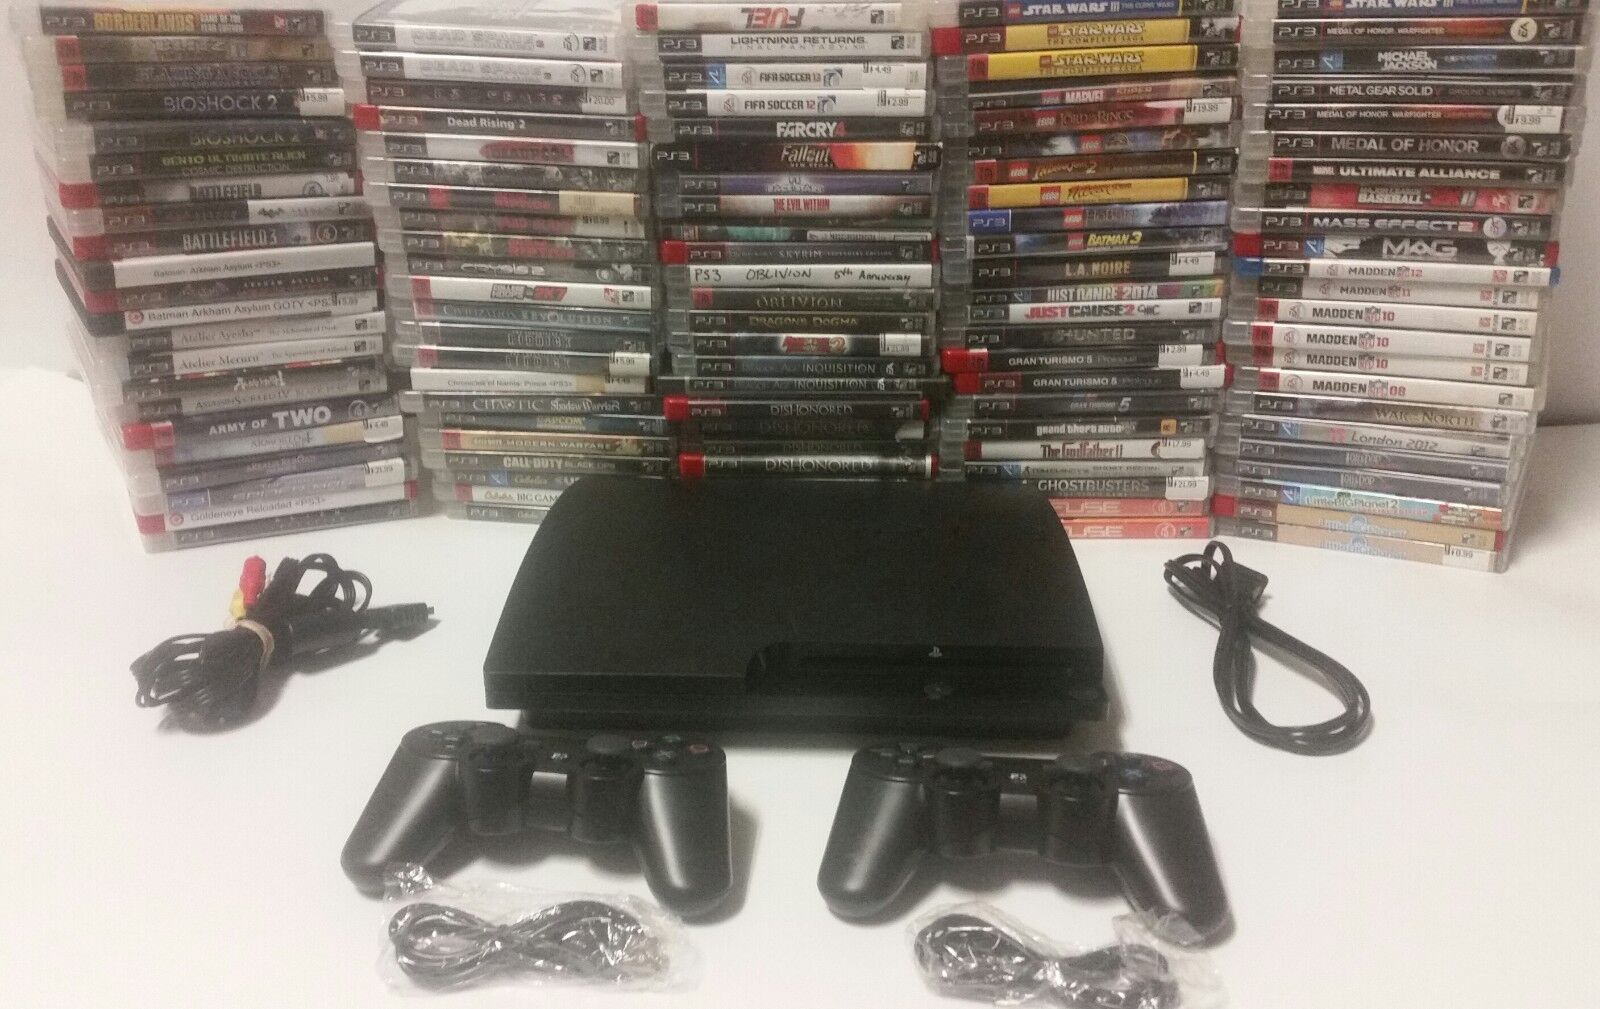 Playstation 3 Ps3 Console system 250gb, 320gb, 2 BRAND NEW controllers, games